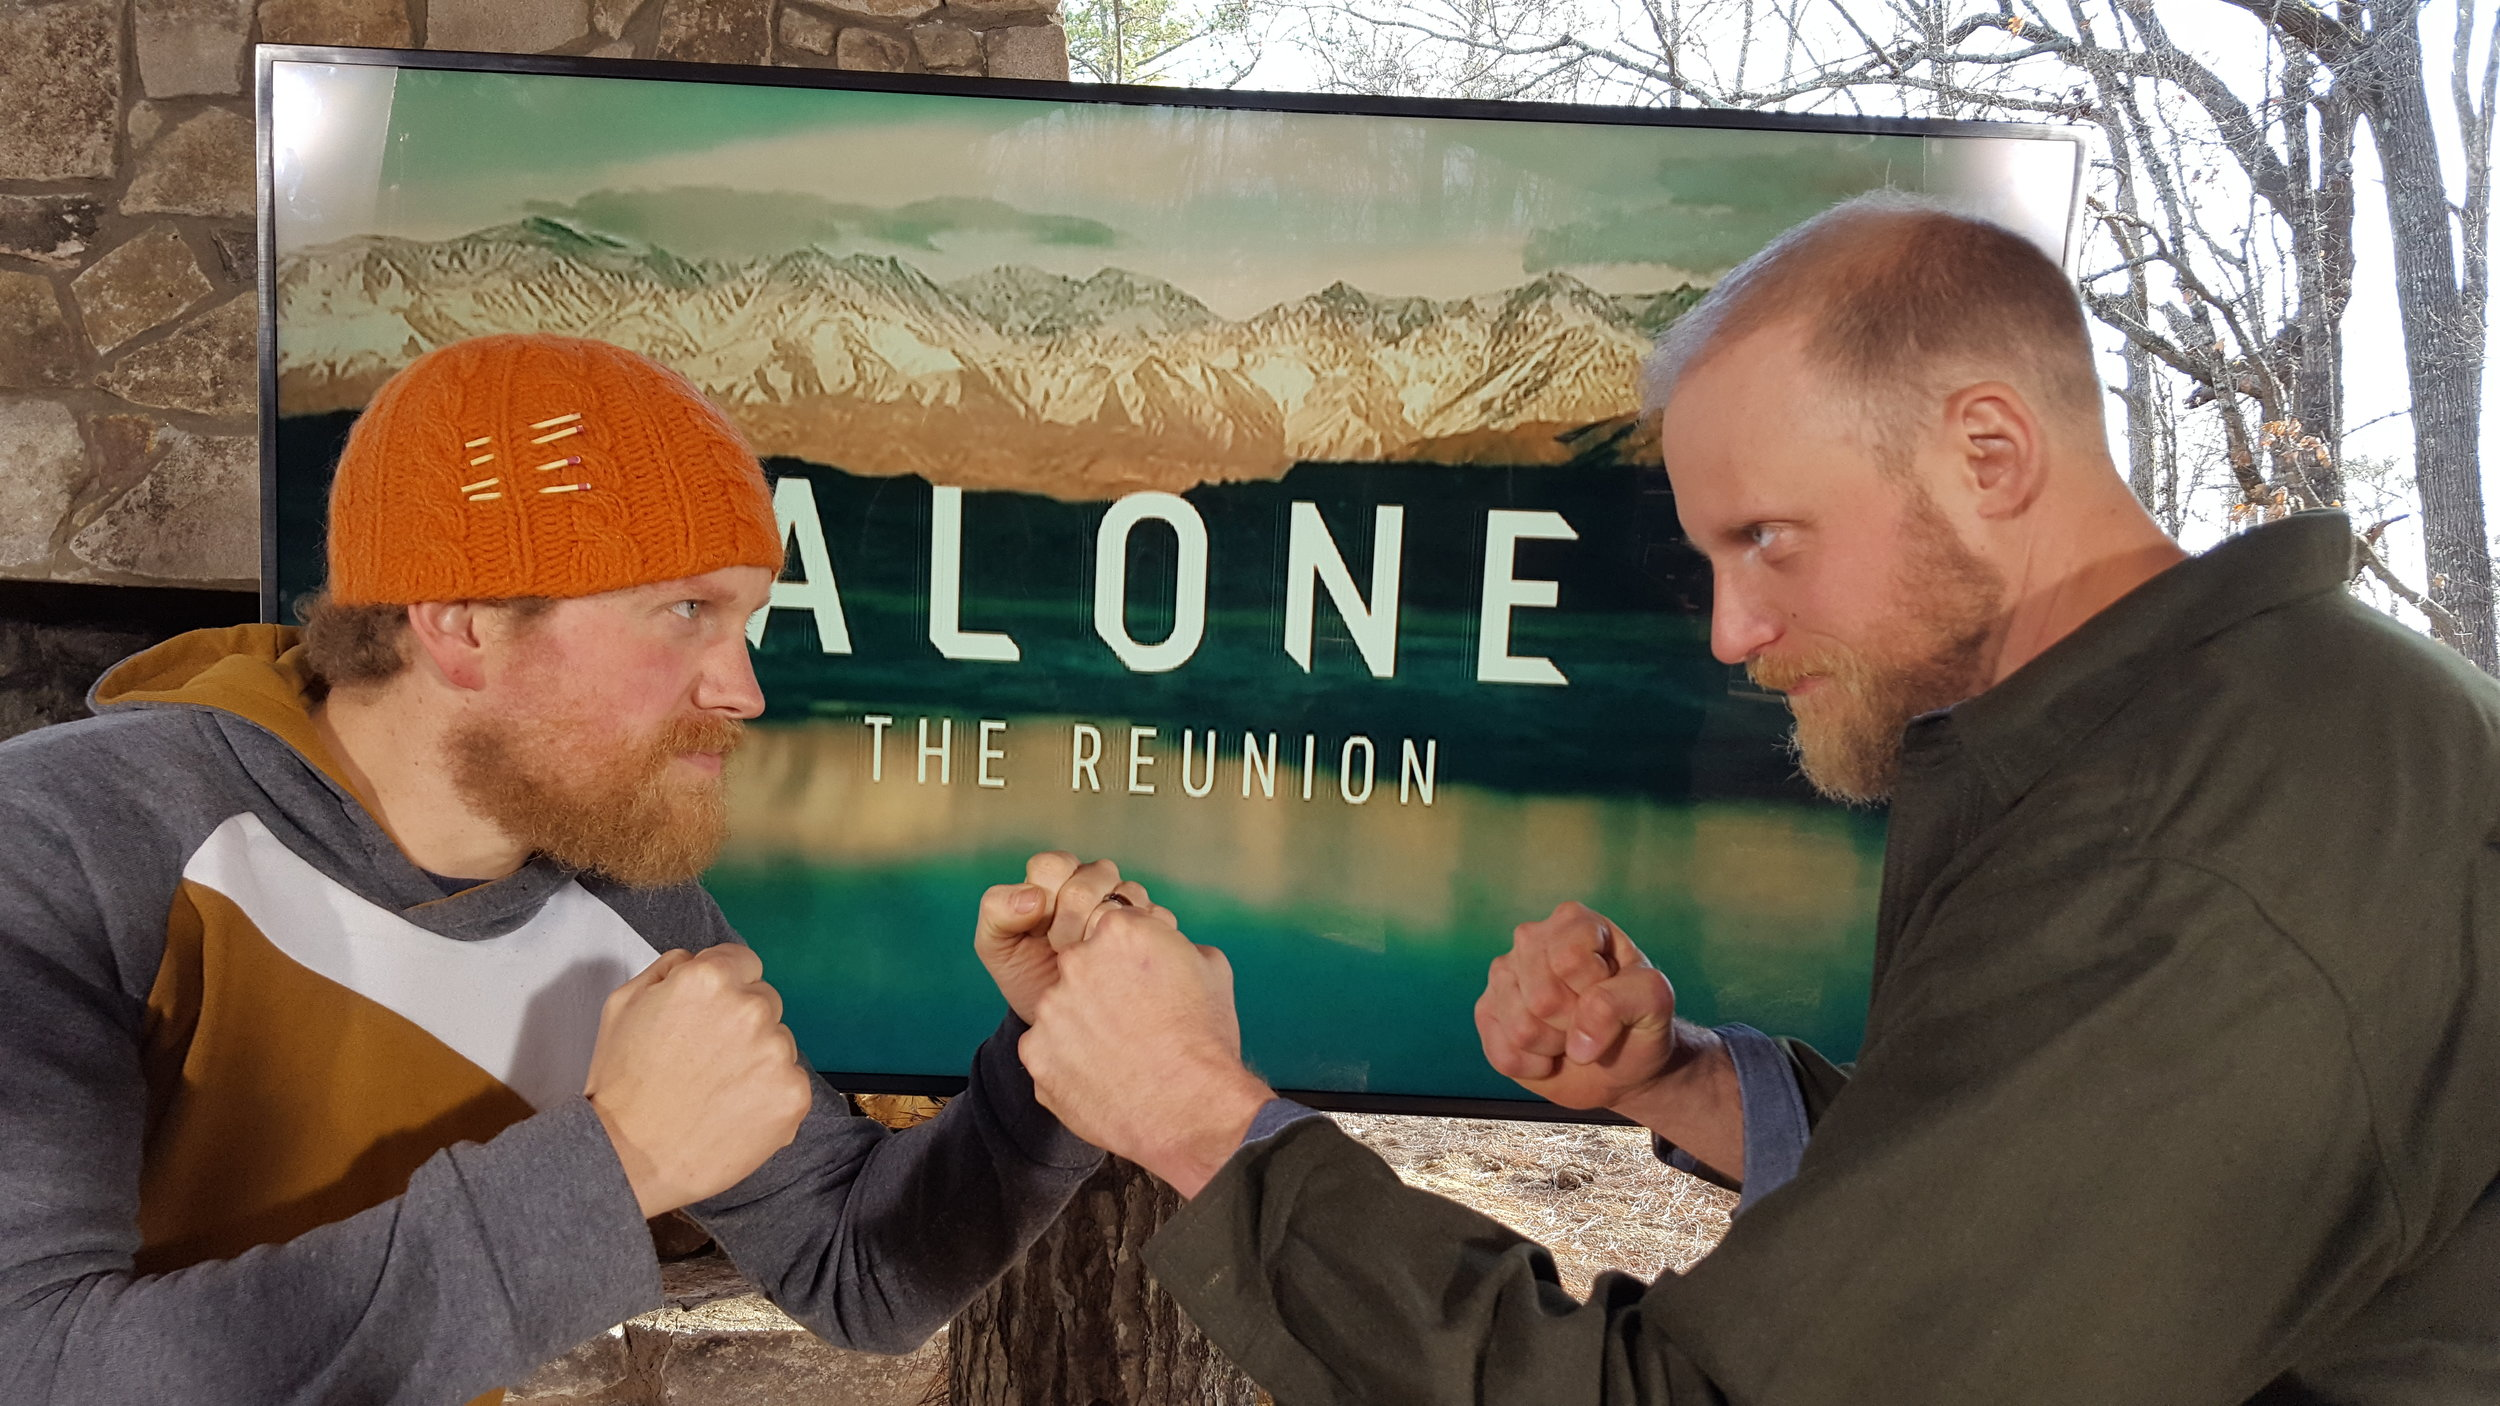 Dan and I having a bit of fun and squaring off the way they made it look on the show.